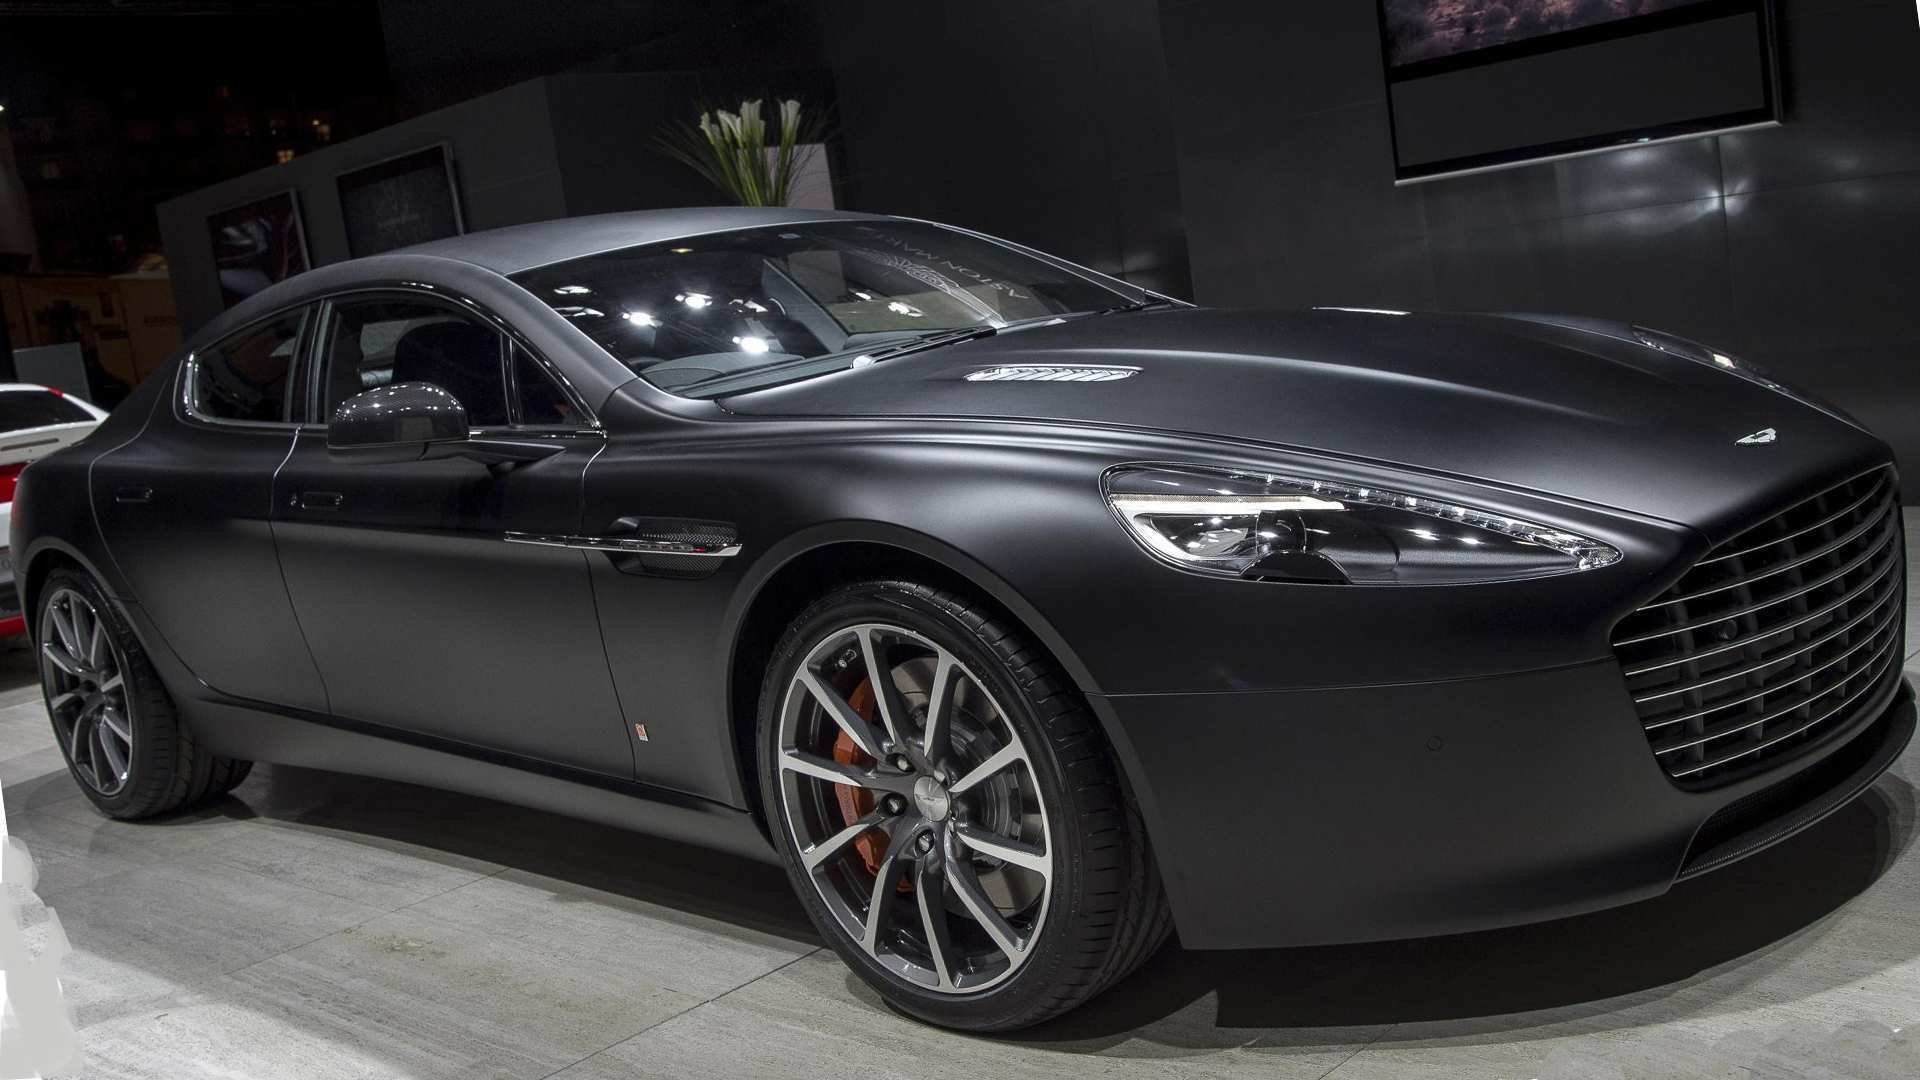 81 All New 2019 Aston Martin Rapide Price with 2019 Aston Martin Rapide